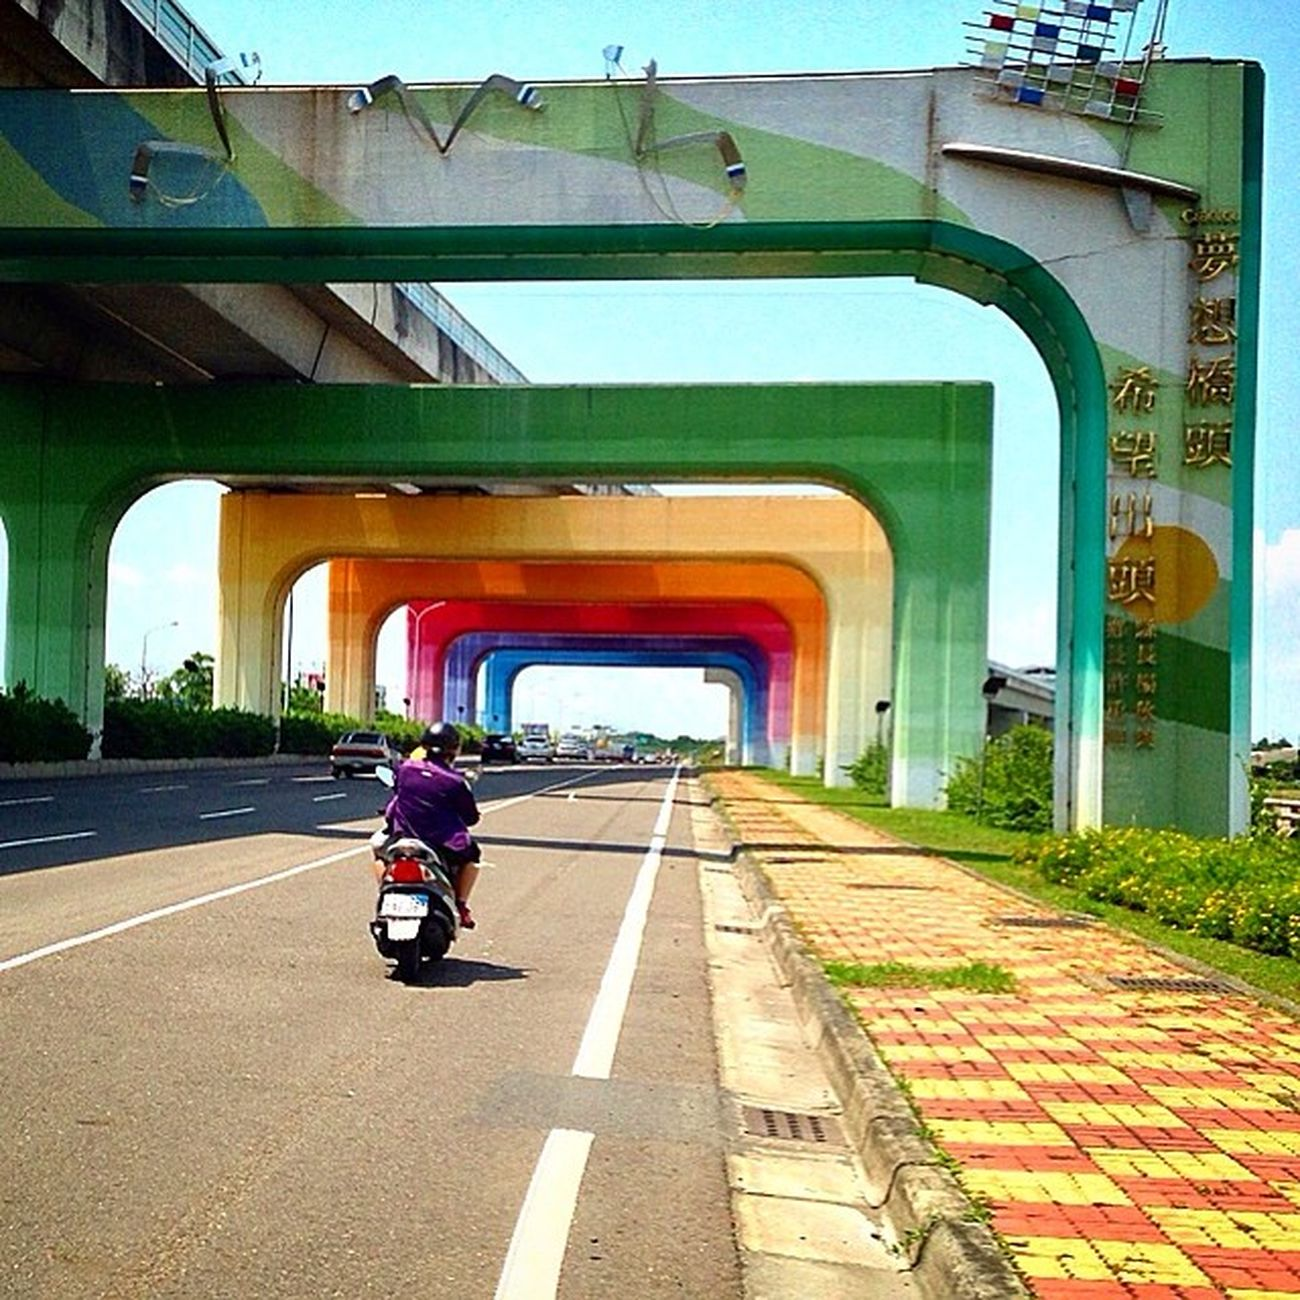 Happiness is accompanied by sorrow, and it would turn sunny after rain as well. Taiwan Kaohsiung Qiaotou 高雄 橋頭